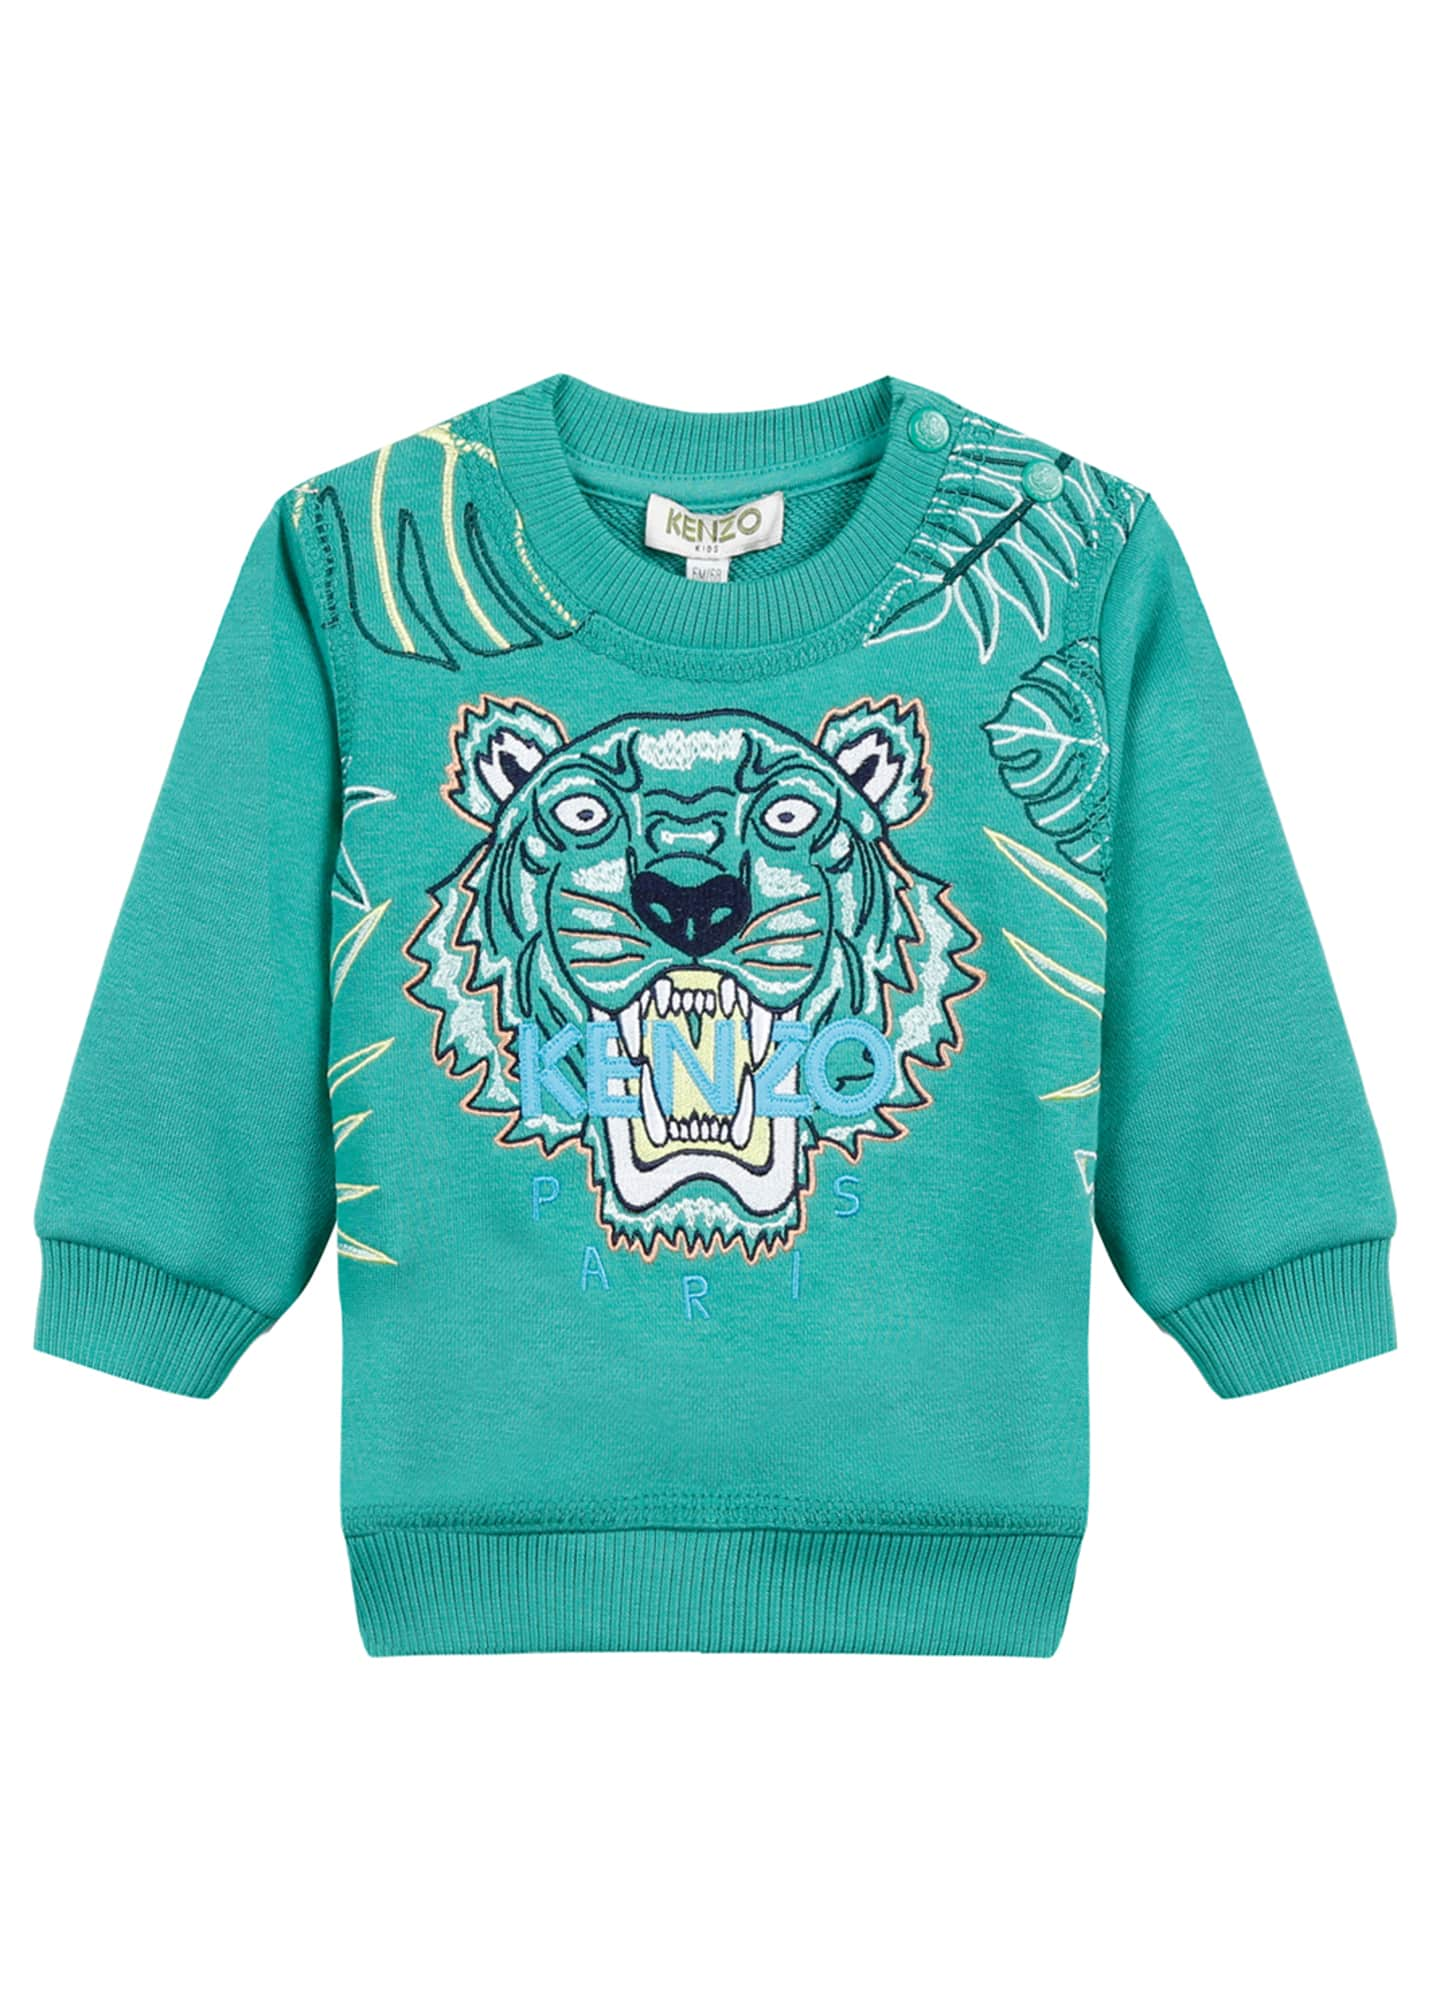 Kenzo Botanical Tiger Embroidered Sweatshirt, Size 12-18 Months